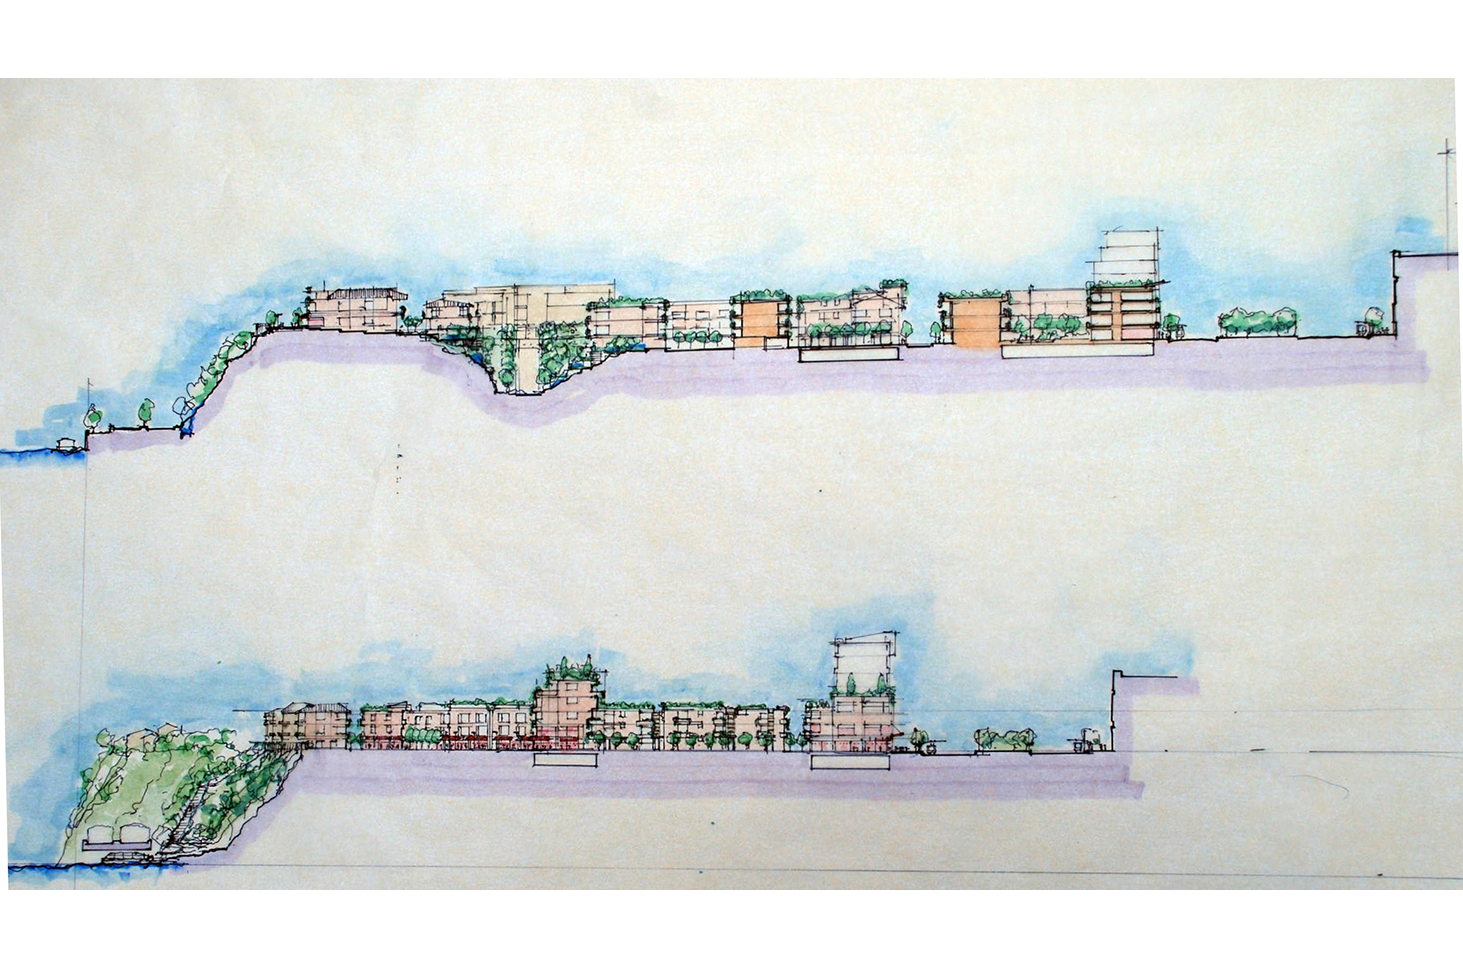 Tibilisi_cross-sections_resized